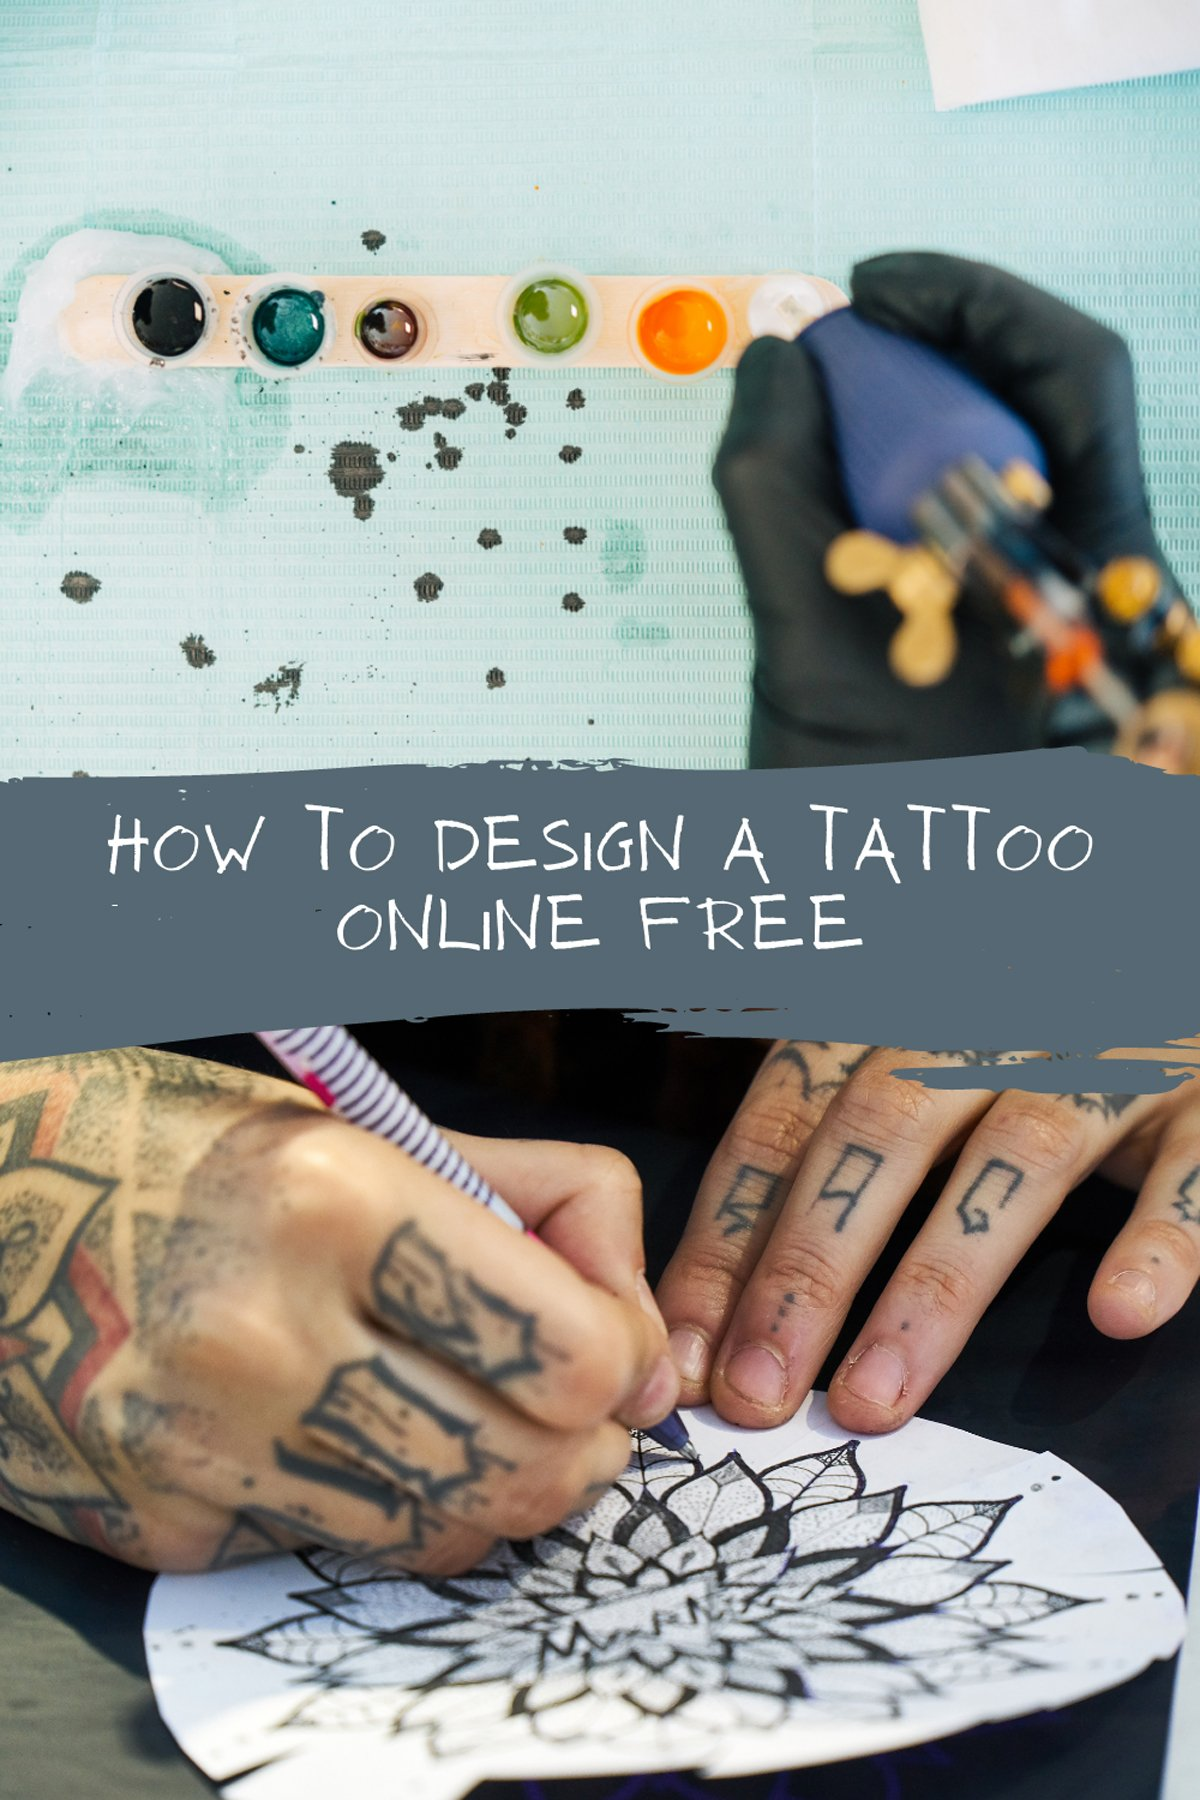 How to Design a Tattoo Online For Free